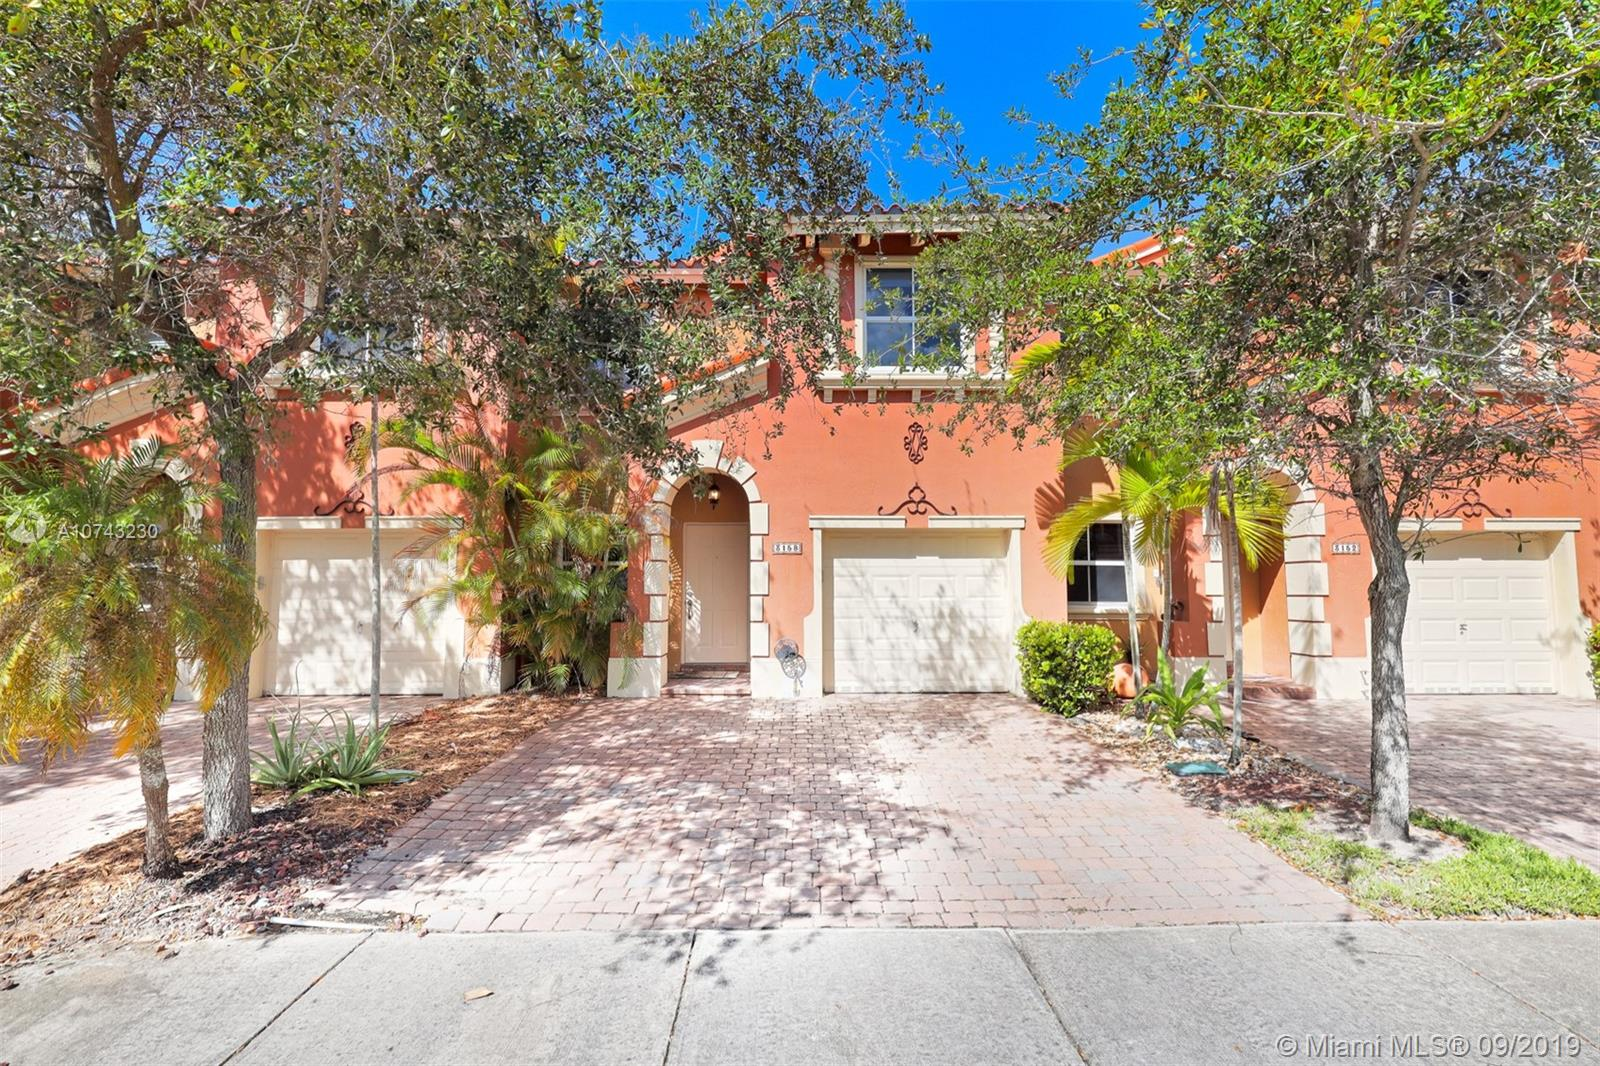 3158 SW 153rd Path, Kendall in Miami-dade County County, FL 33185 Home for Sale